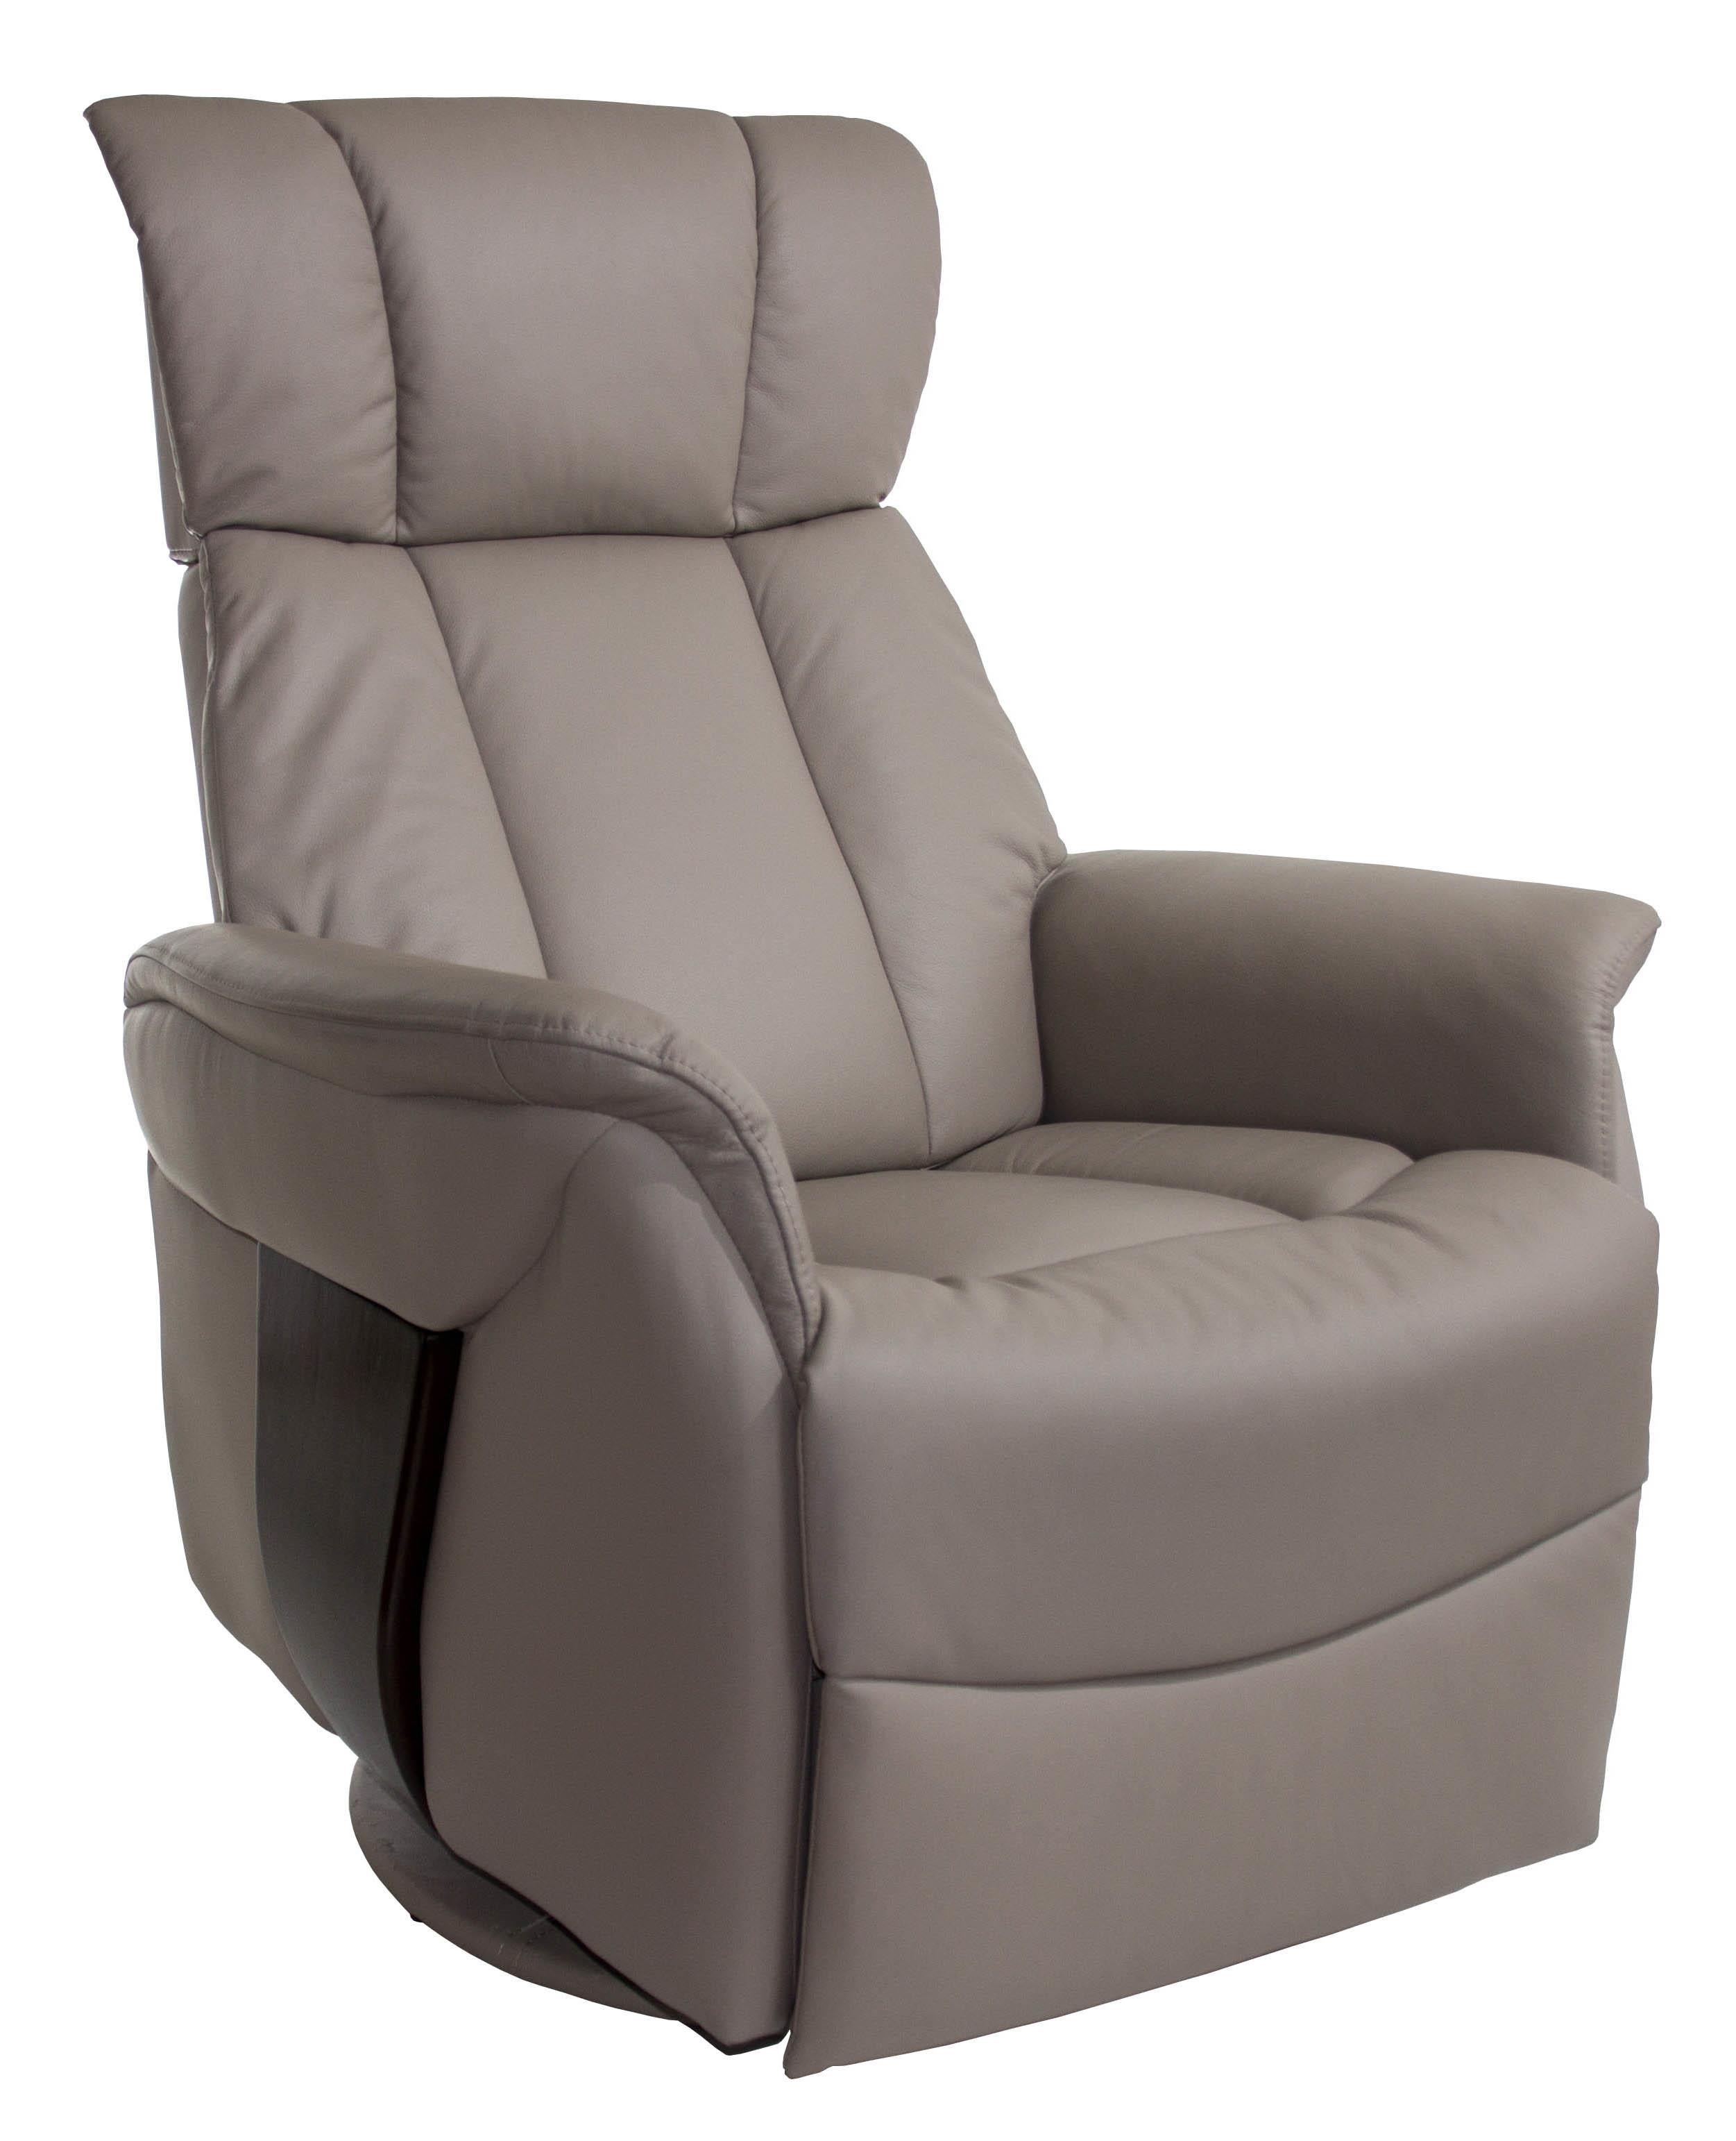 Mac Motion Chairs Oslo Collection Vardo Power Swivel Glider Recliner